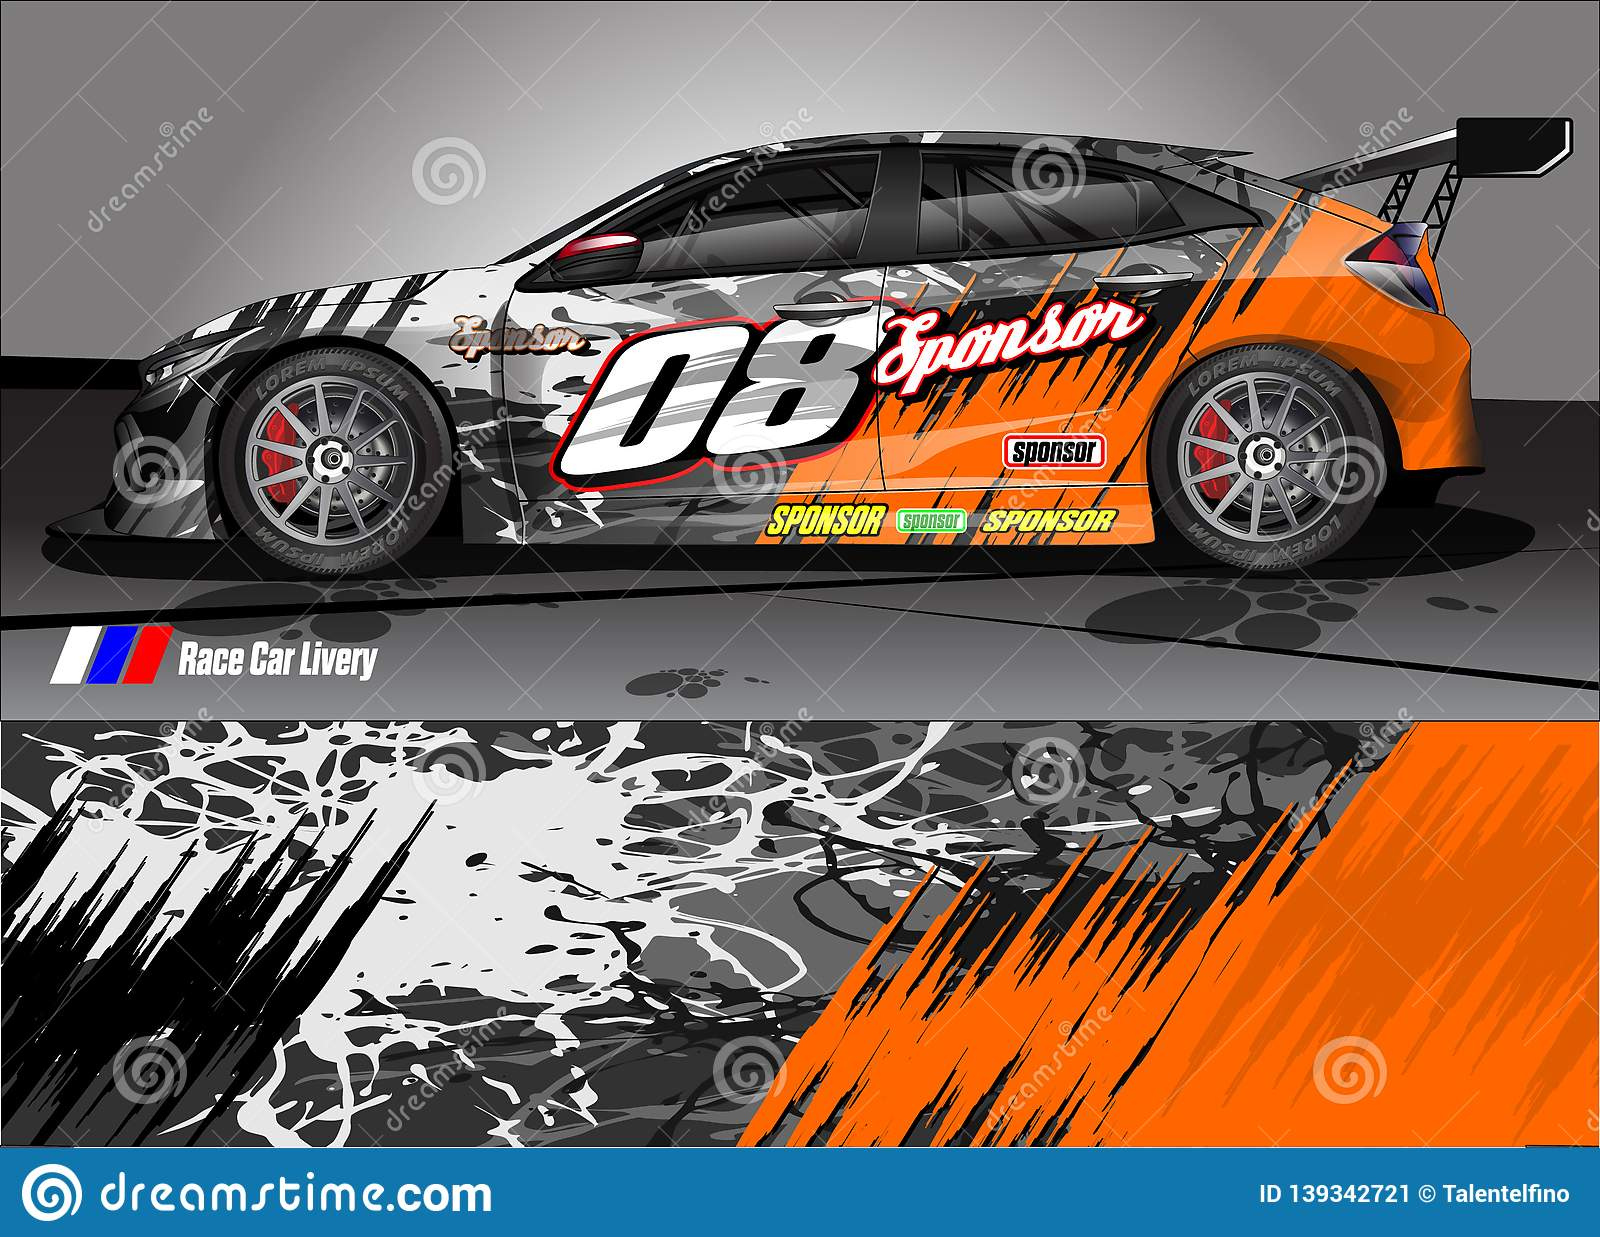 Race Car Livery Graphic Abstract Grunge Background Design For Vehicle Vinyl Wrap And Car Branding Stock Illustration Illustration Of Graphics Grunge 139342721